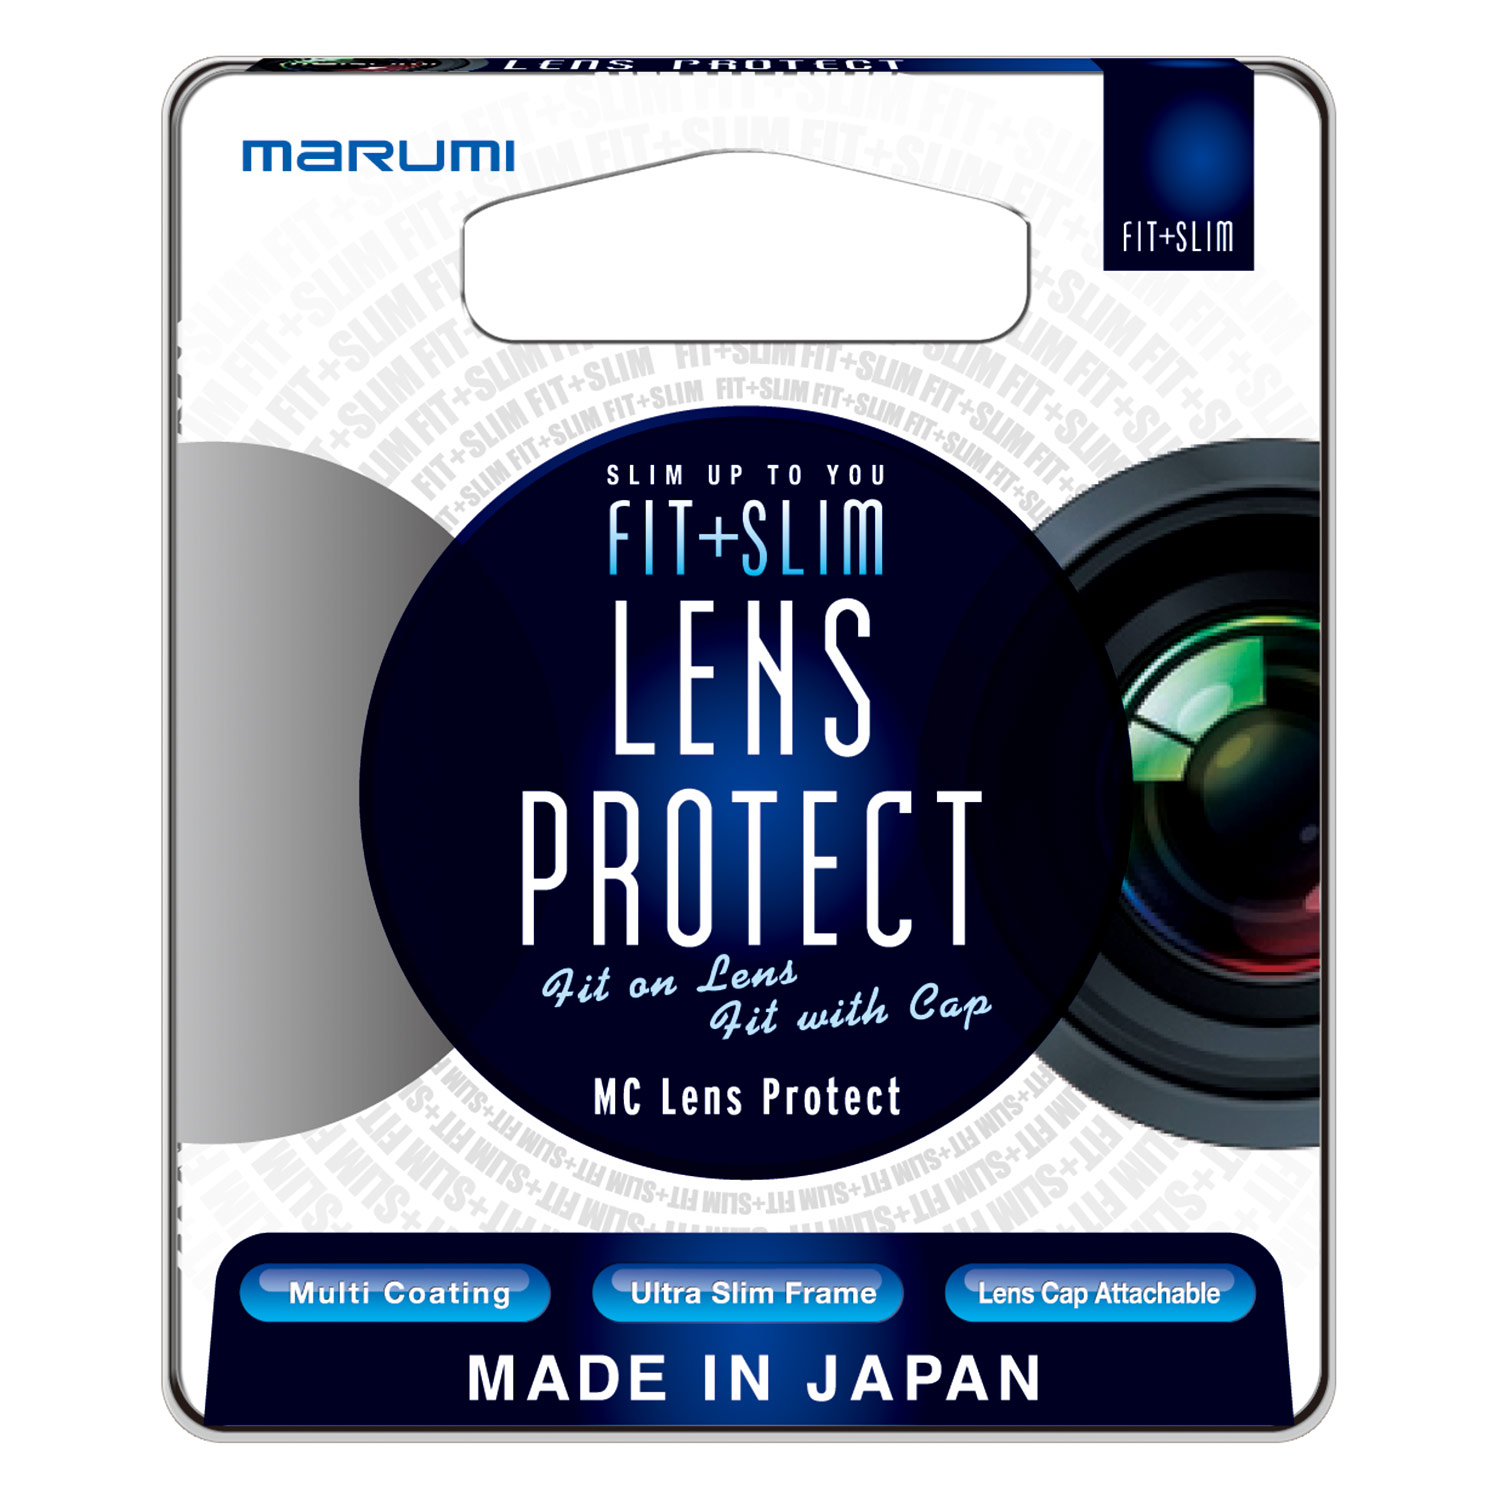 Kính Lọc Marumi DHG Lens Protect SLIM FIT 52mm